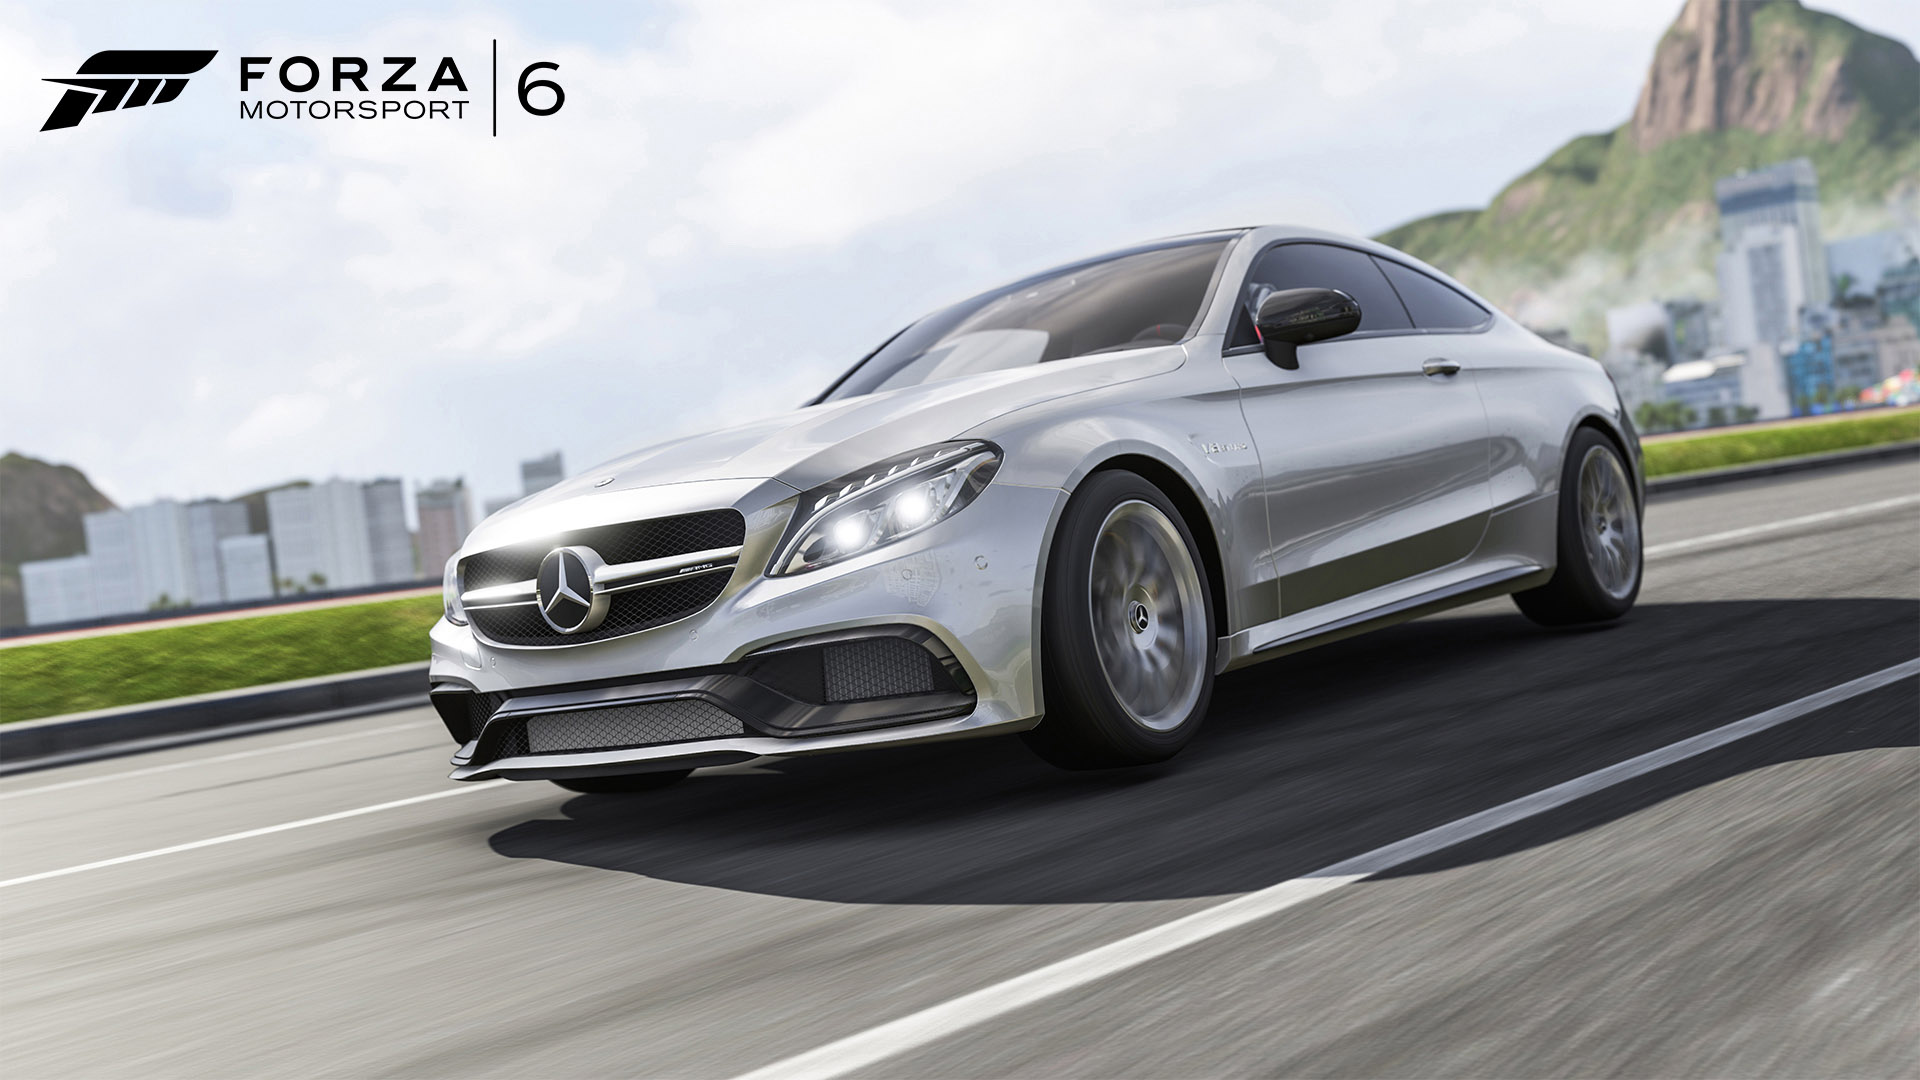 Mercedes amg c63 s coupe is featured in forza motorsport 6 for Mercedes benz motorsport